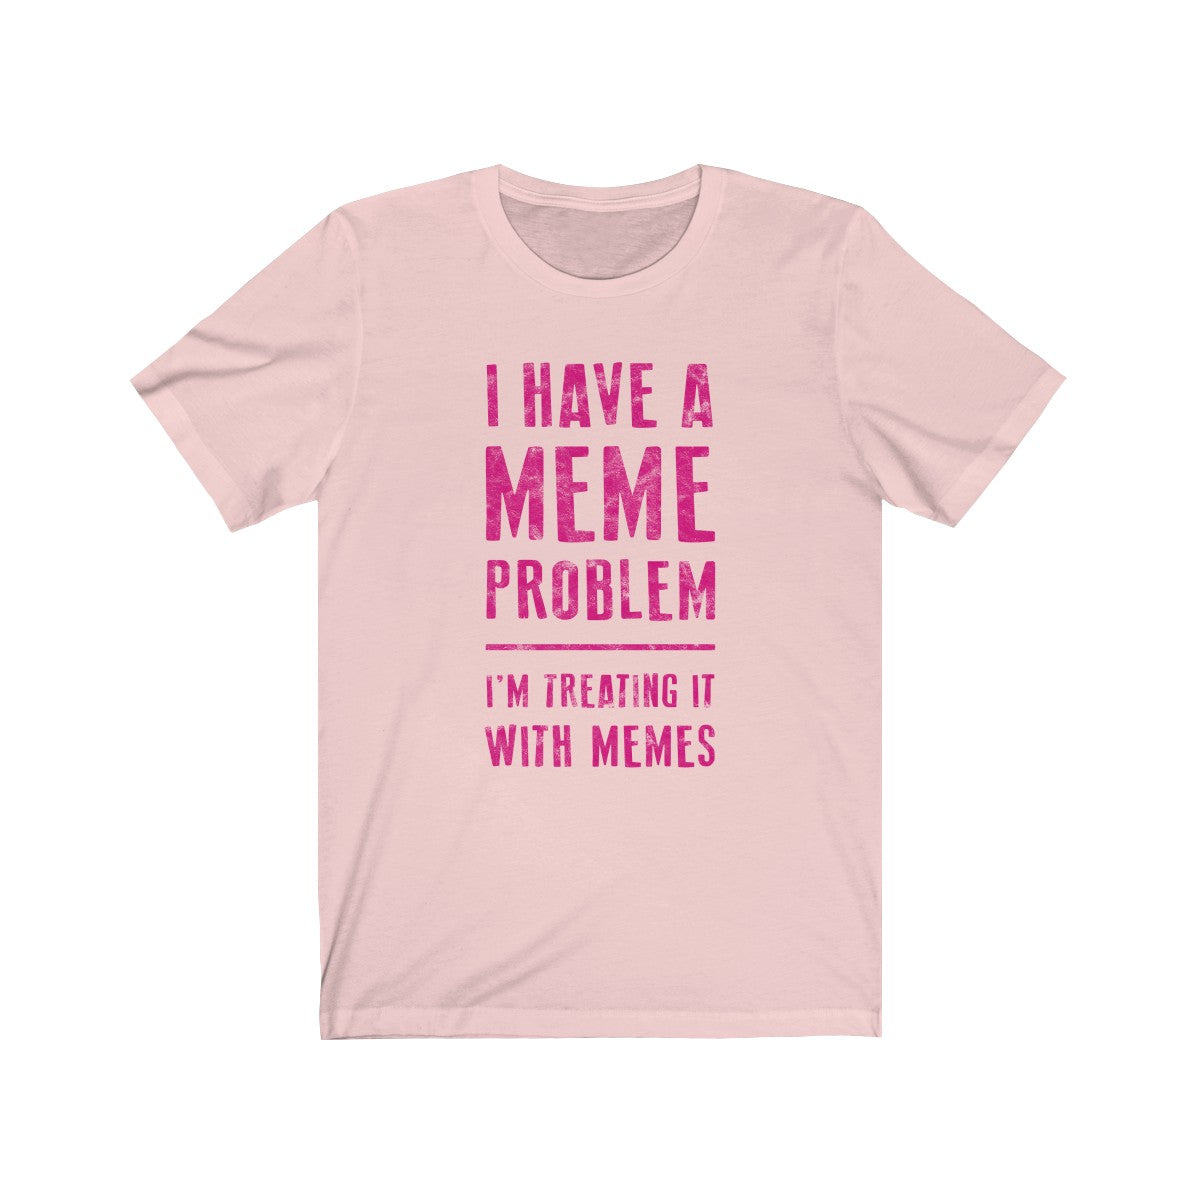 Meme Problem . Magenta Print . Unisex Cotton Tee